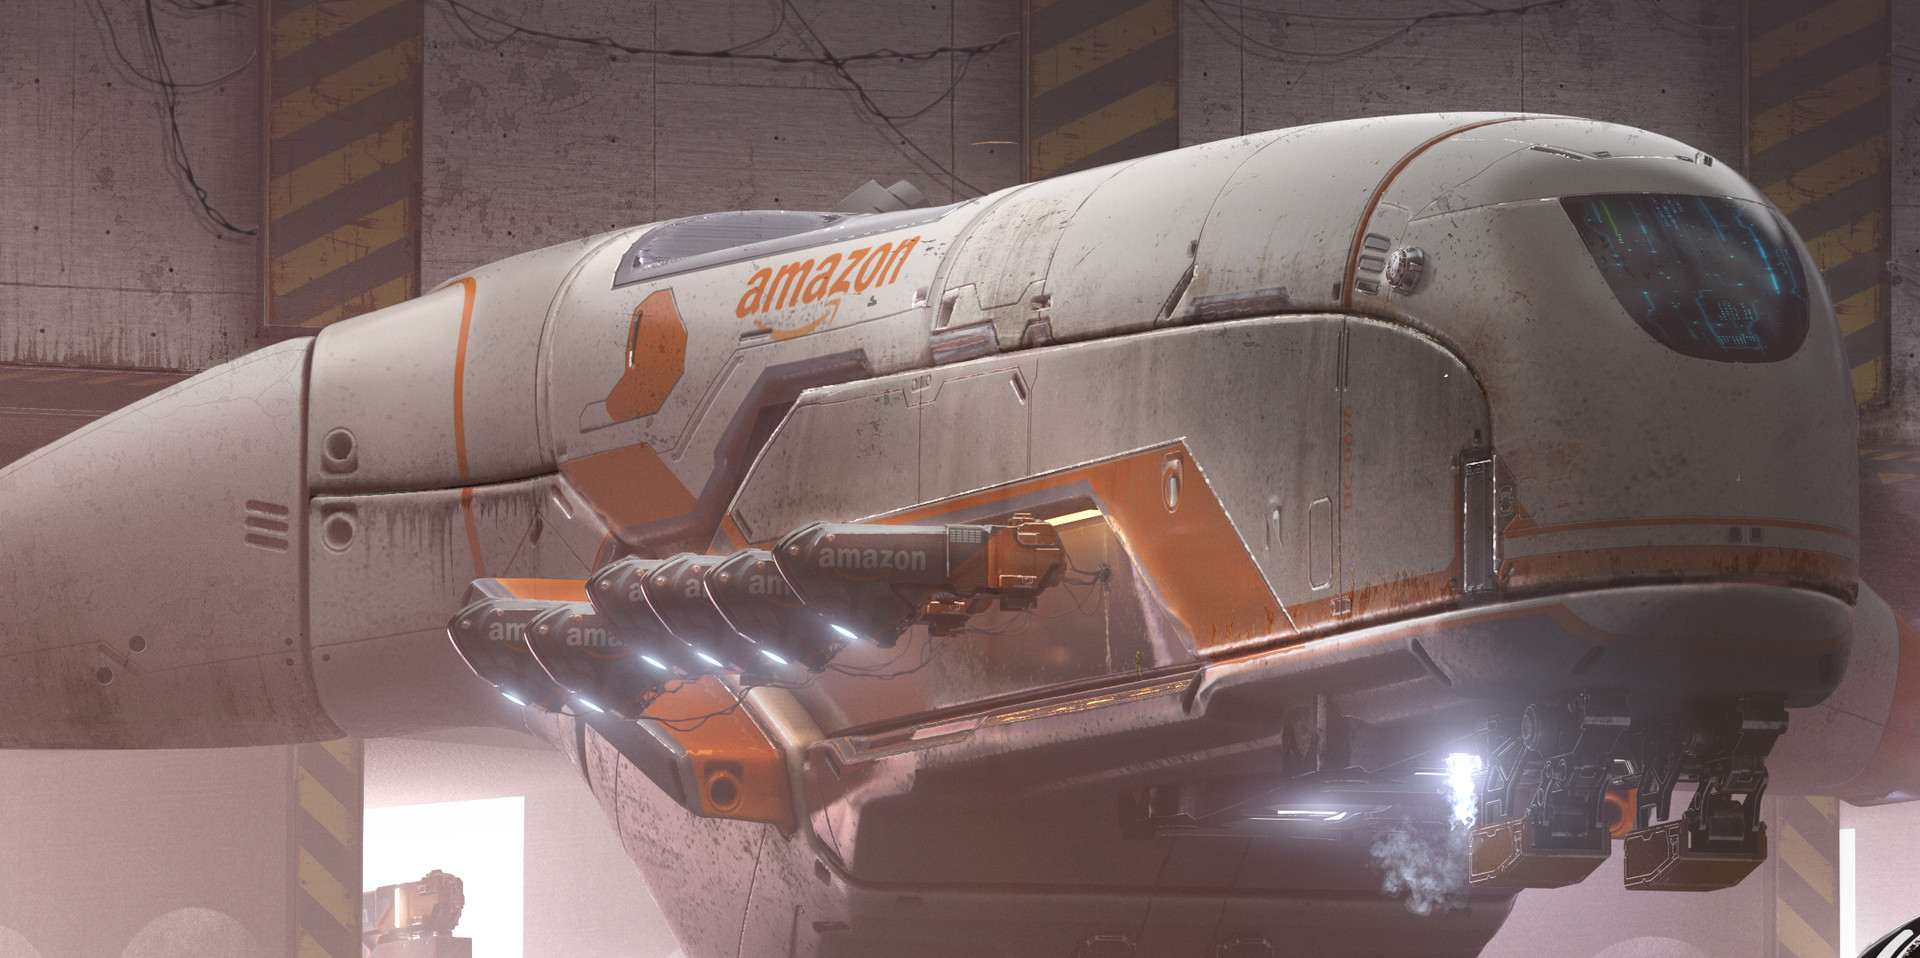 Amazon Loading Dock Concept Art by Daniel Balzer